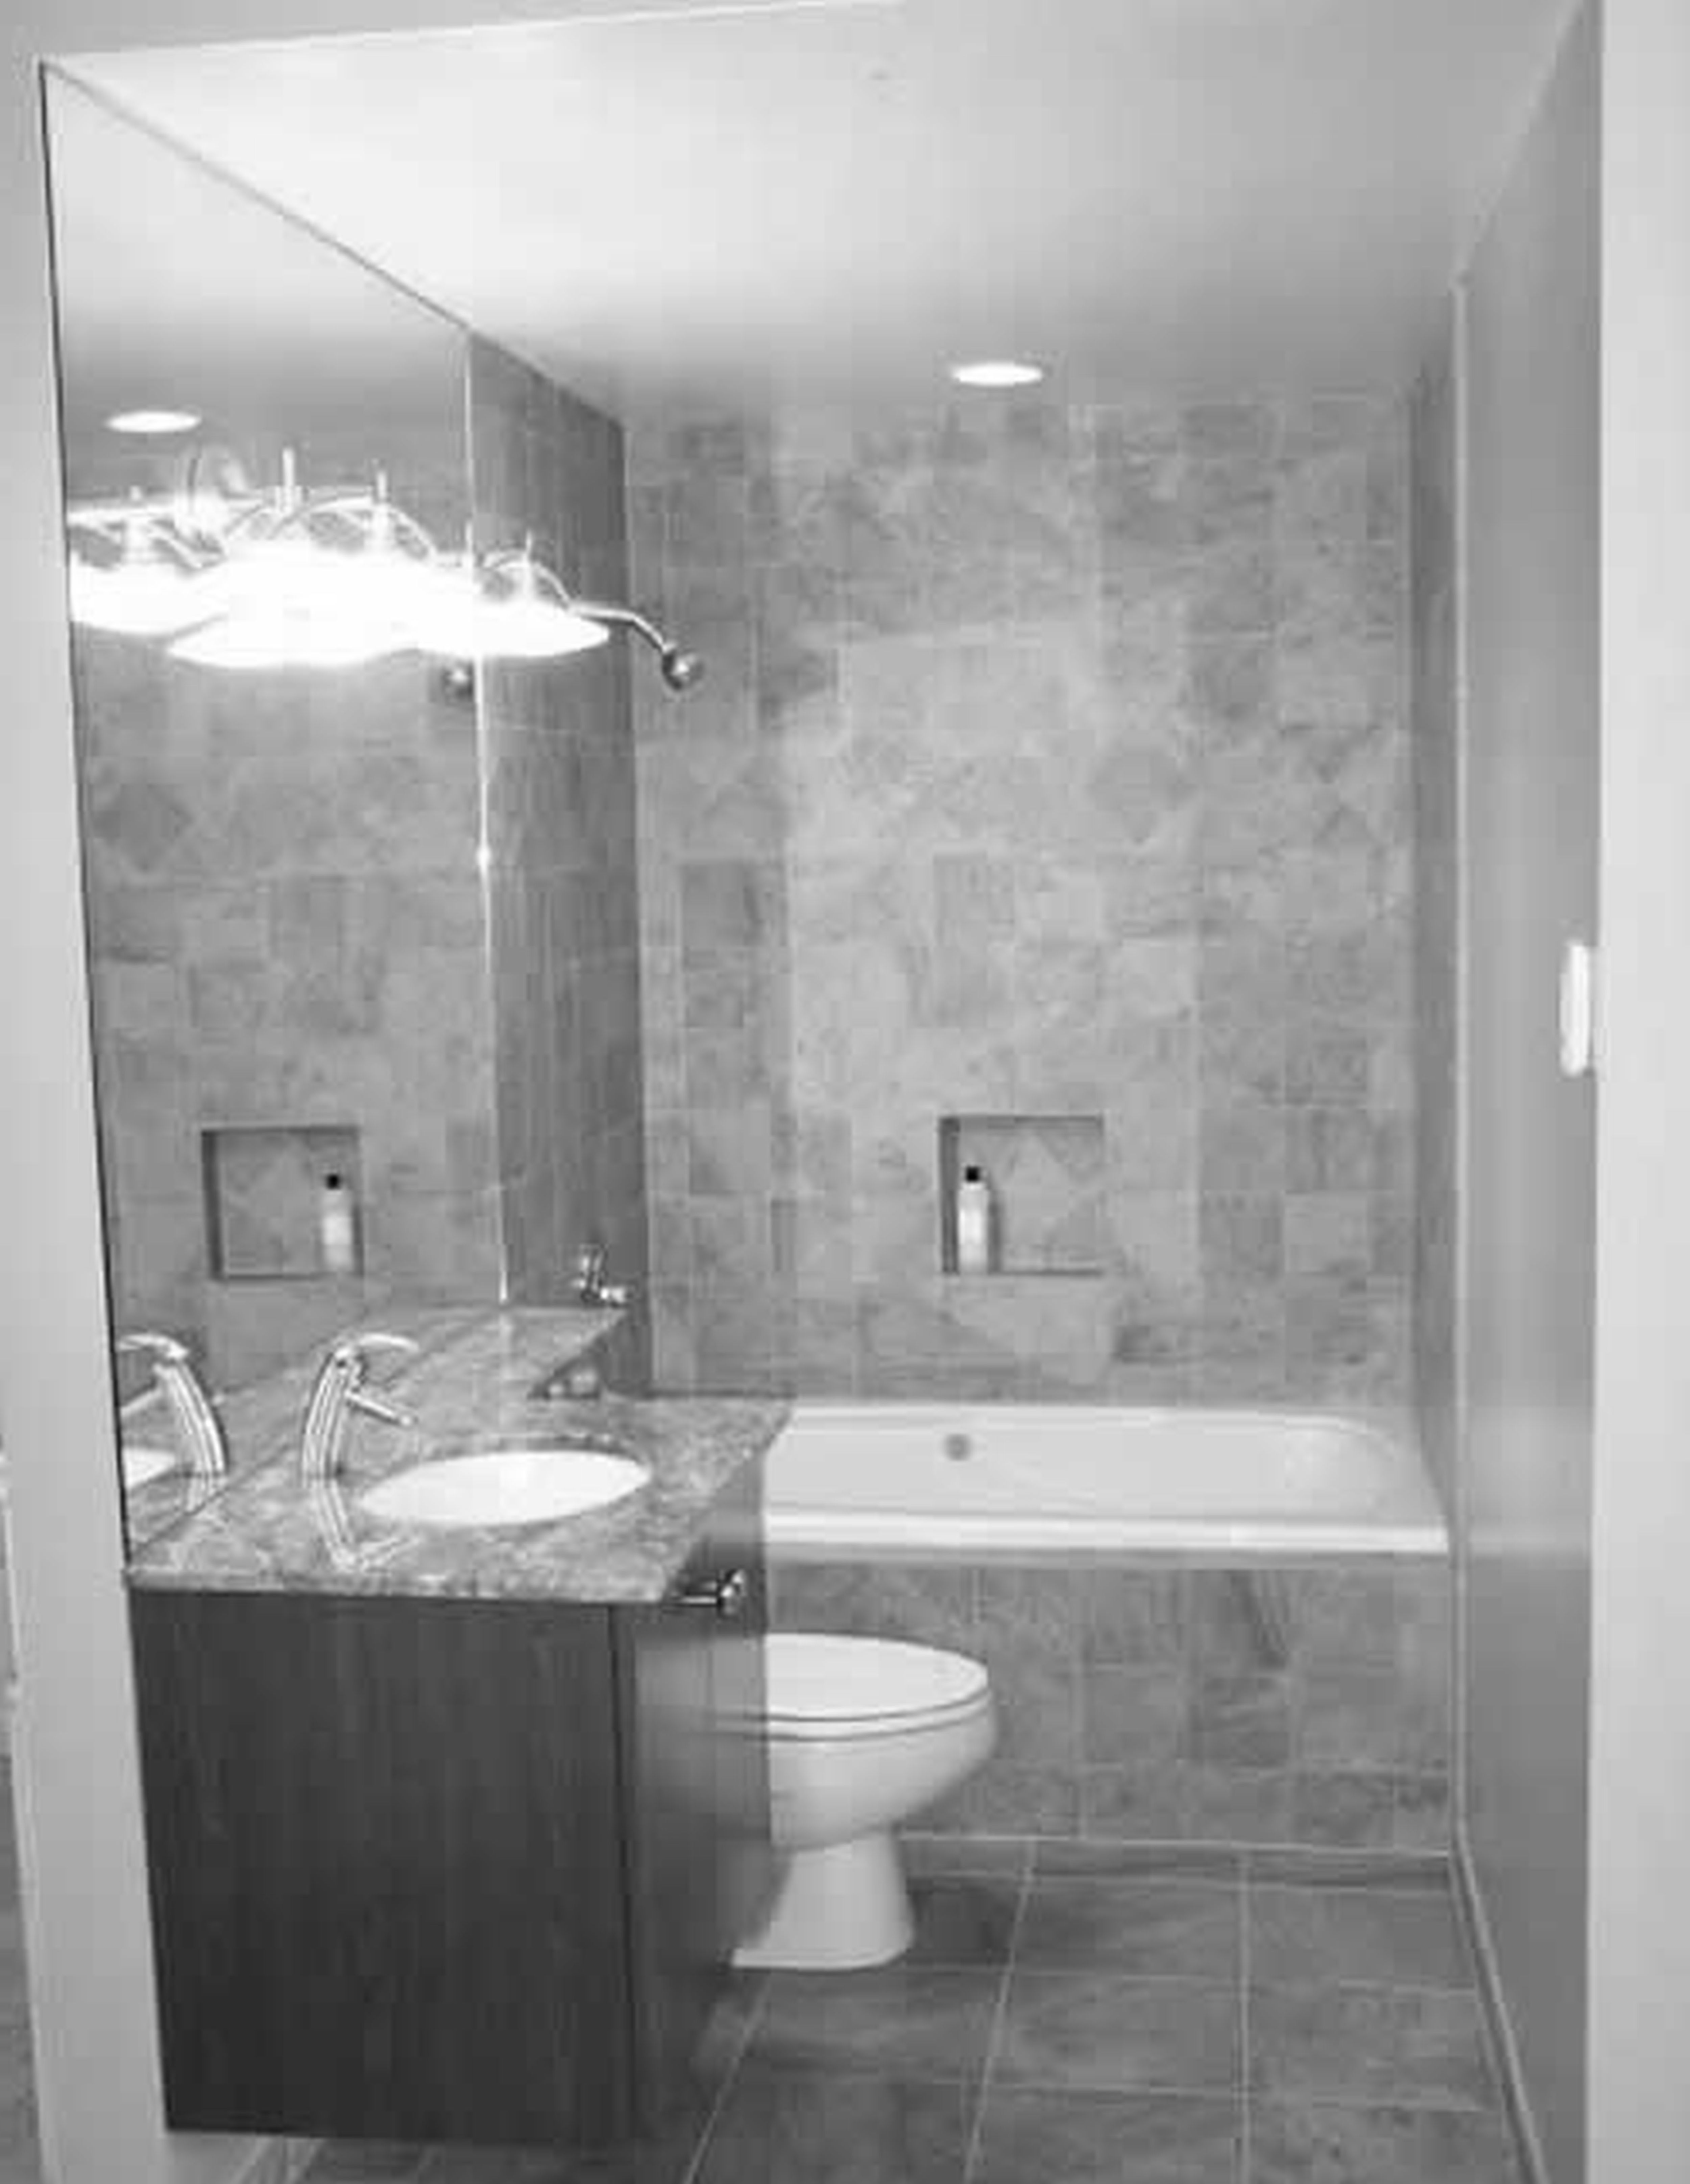 20 Amazing Powder Room Ideas Philippines Allowed For You To My Blog Site With This T Small Bathroom Renovations Small Bathroom Remodel Bathroom Remodel Cost